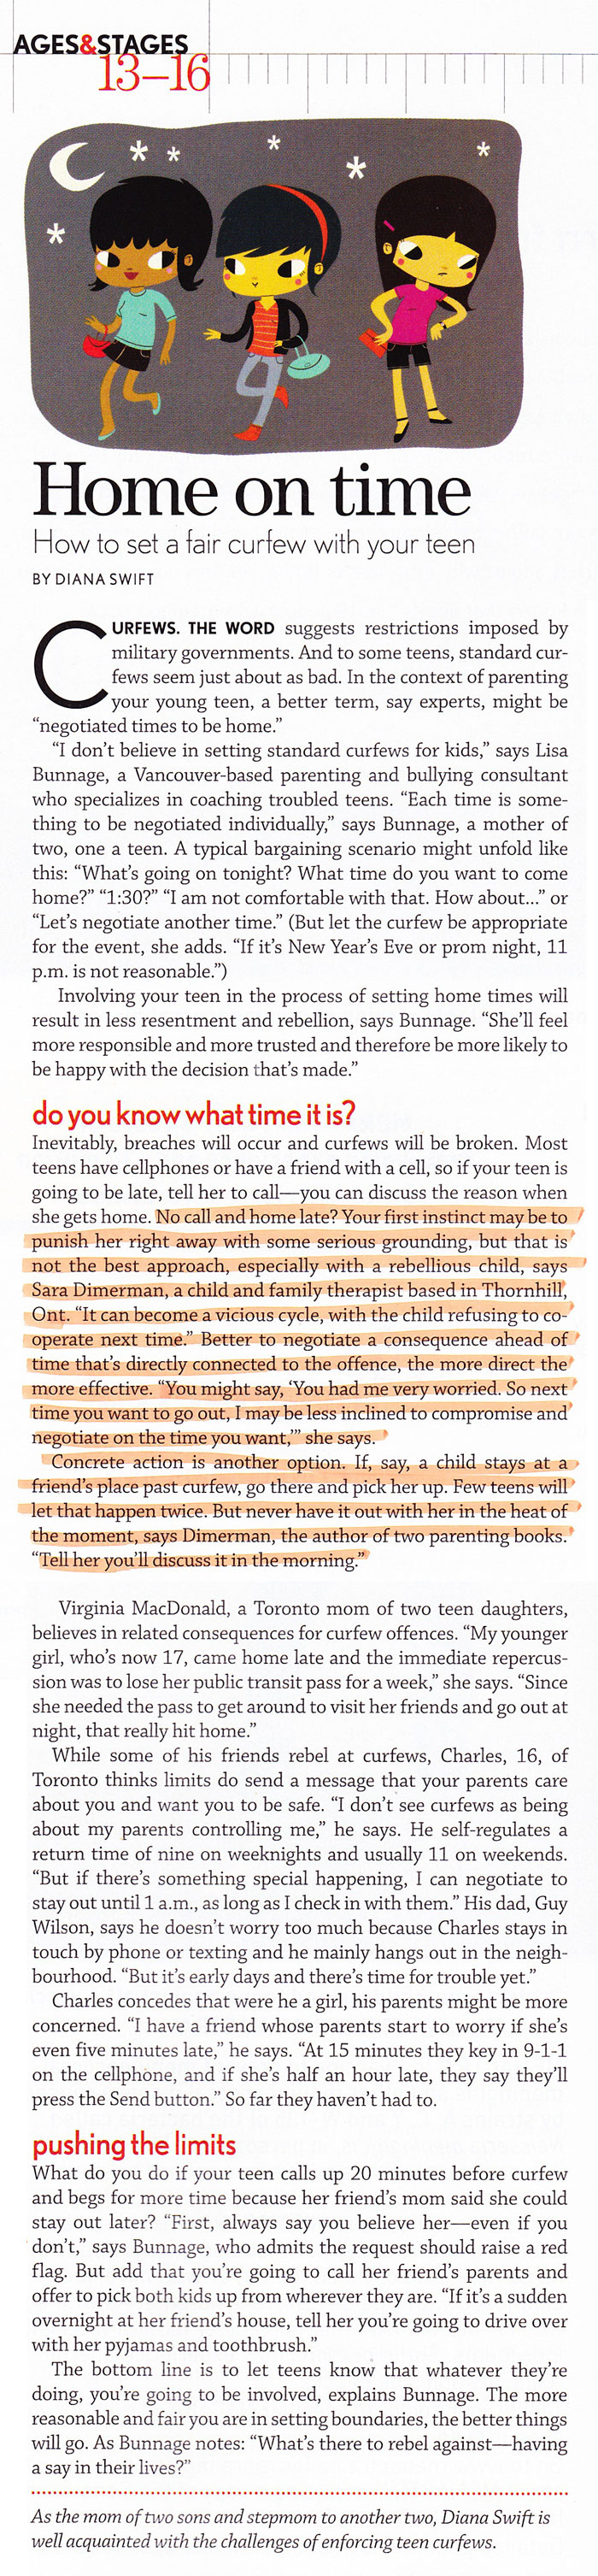 Image: Home on time – how to set a fair curfew with your teen